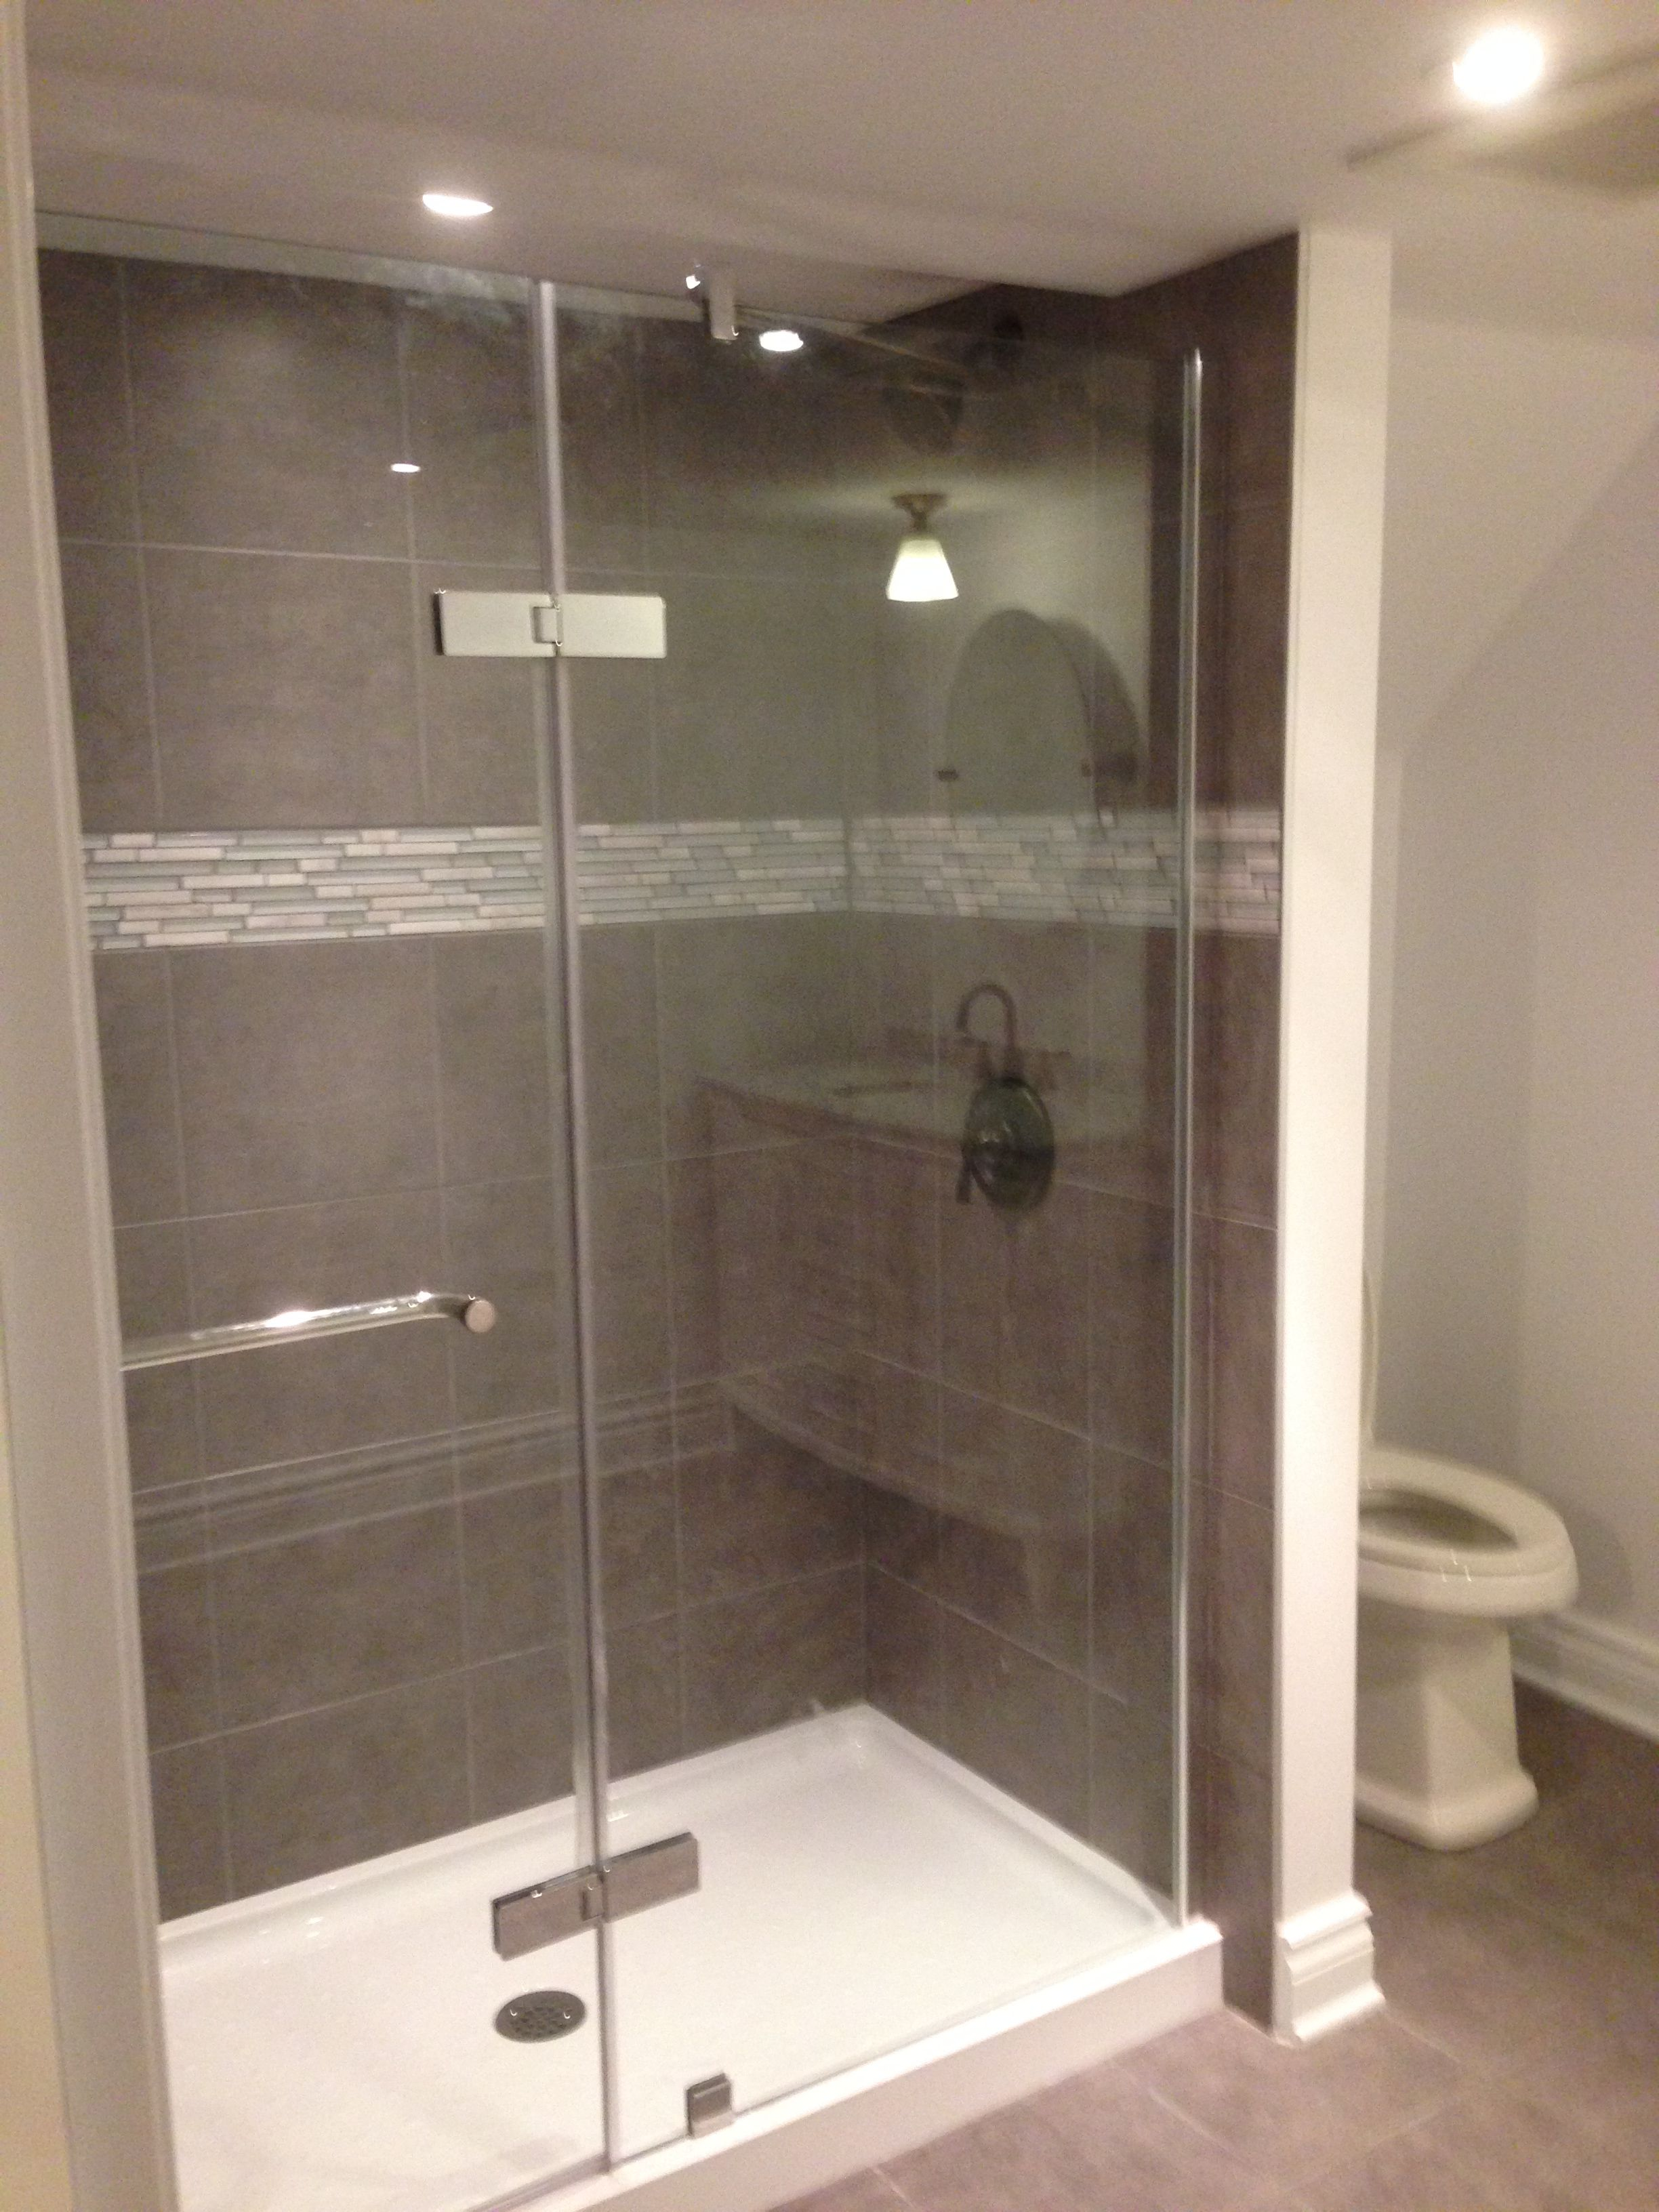 Brico Leclerc Catalogue Salle De Bain ~ Douche Vitr E Avec Murs En C Ramique Shower With Glass Panels And